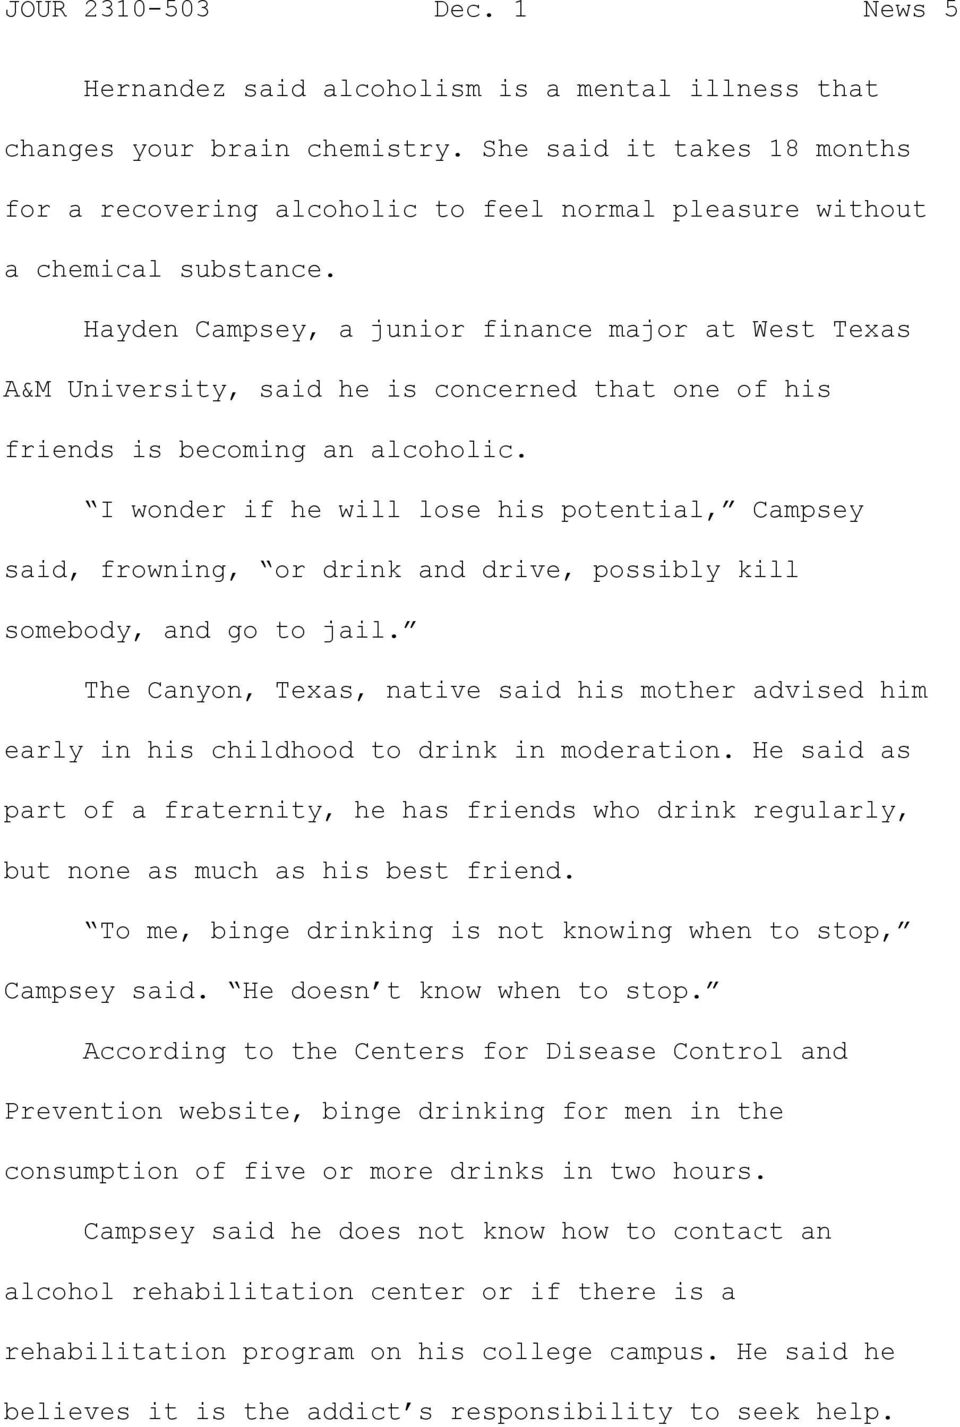 I wonder if he will lose his potential, Campsey said, frowning, or drink and drive, possibly kill somebody, and go to jail.